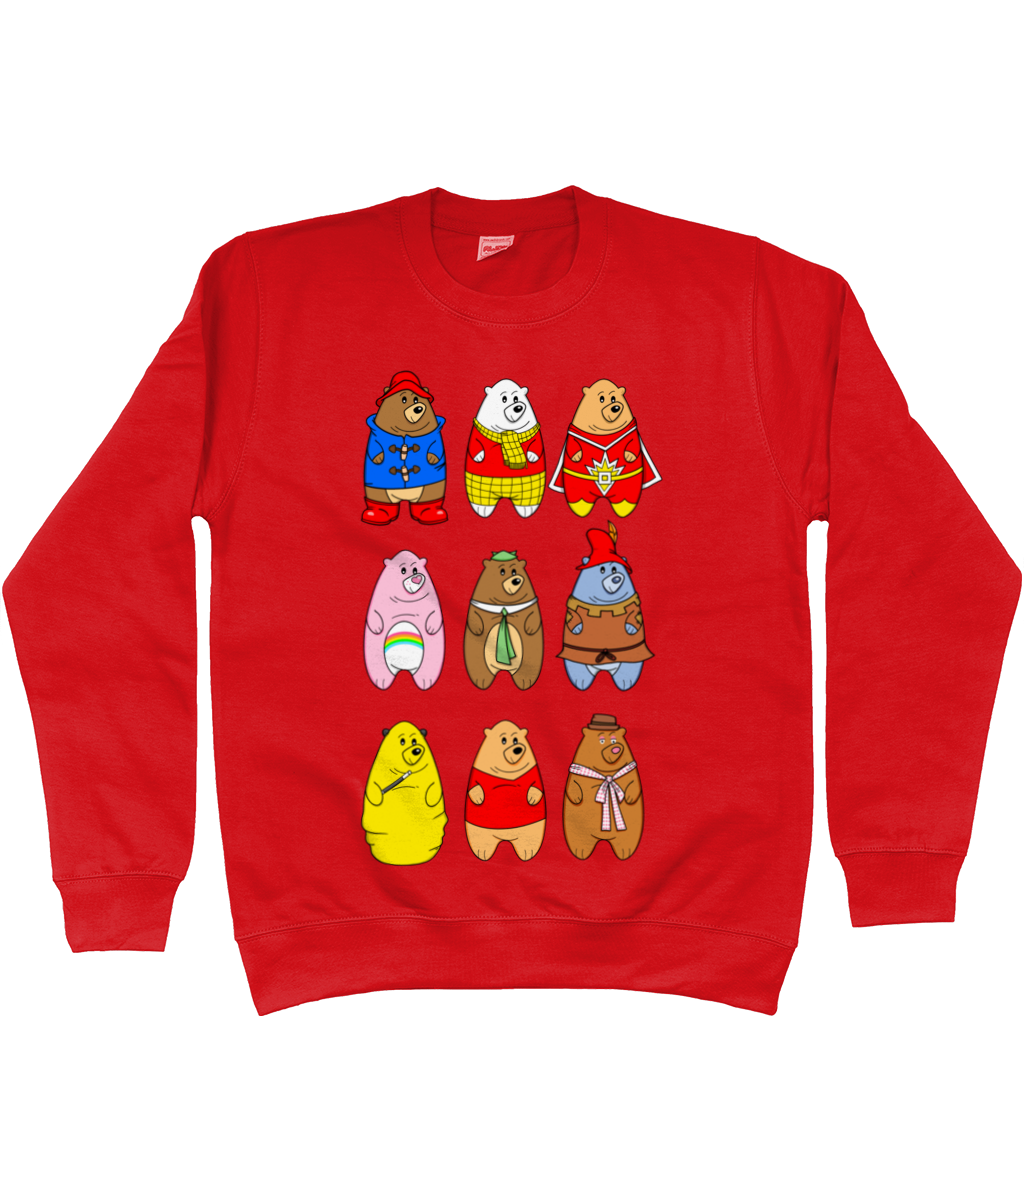 A collection of famous cartoon bears on a red sweater